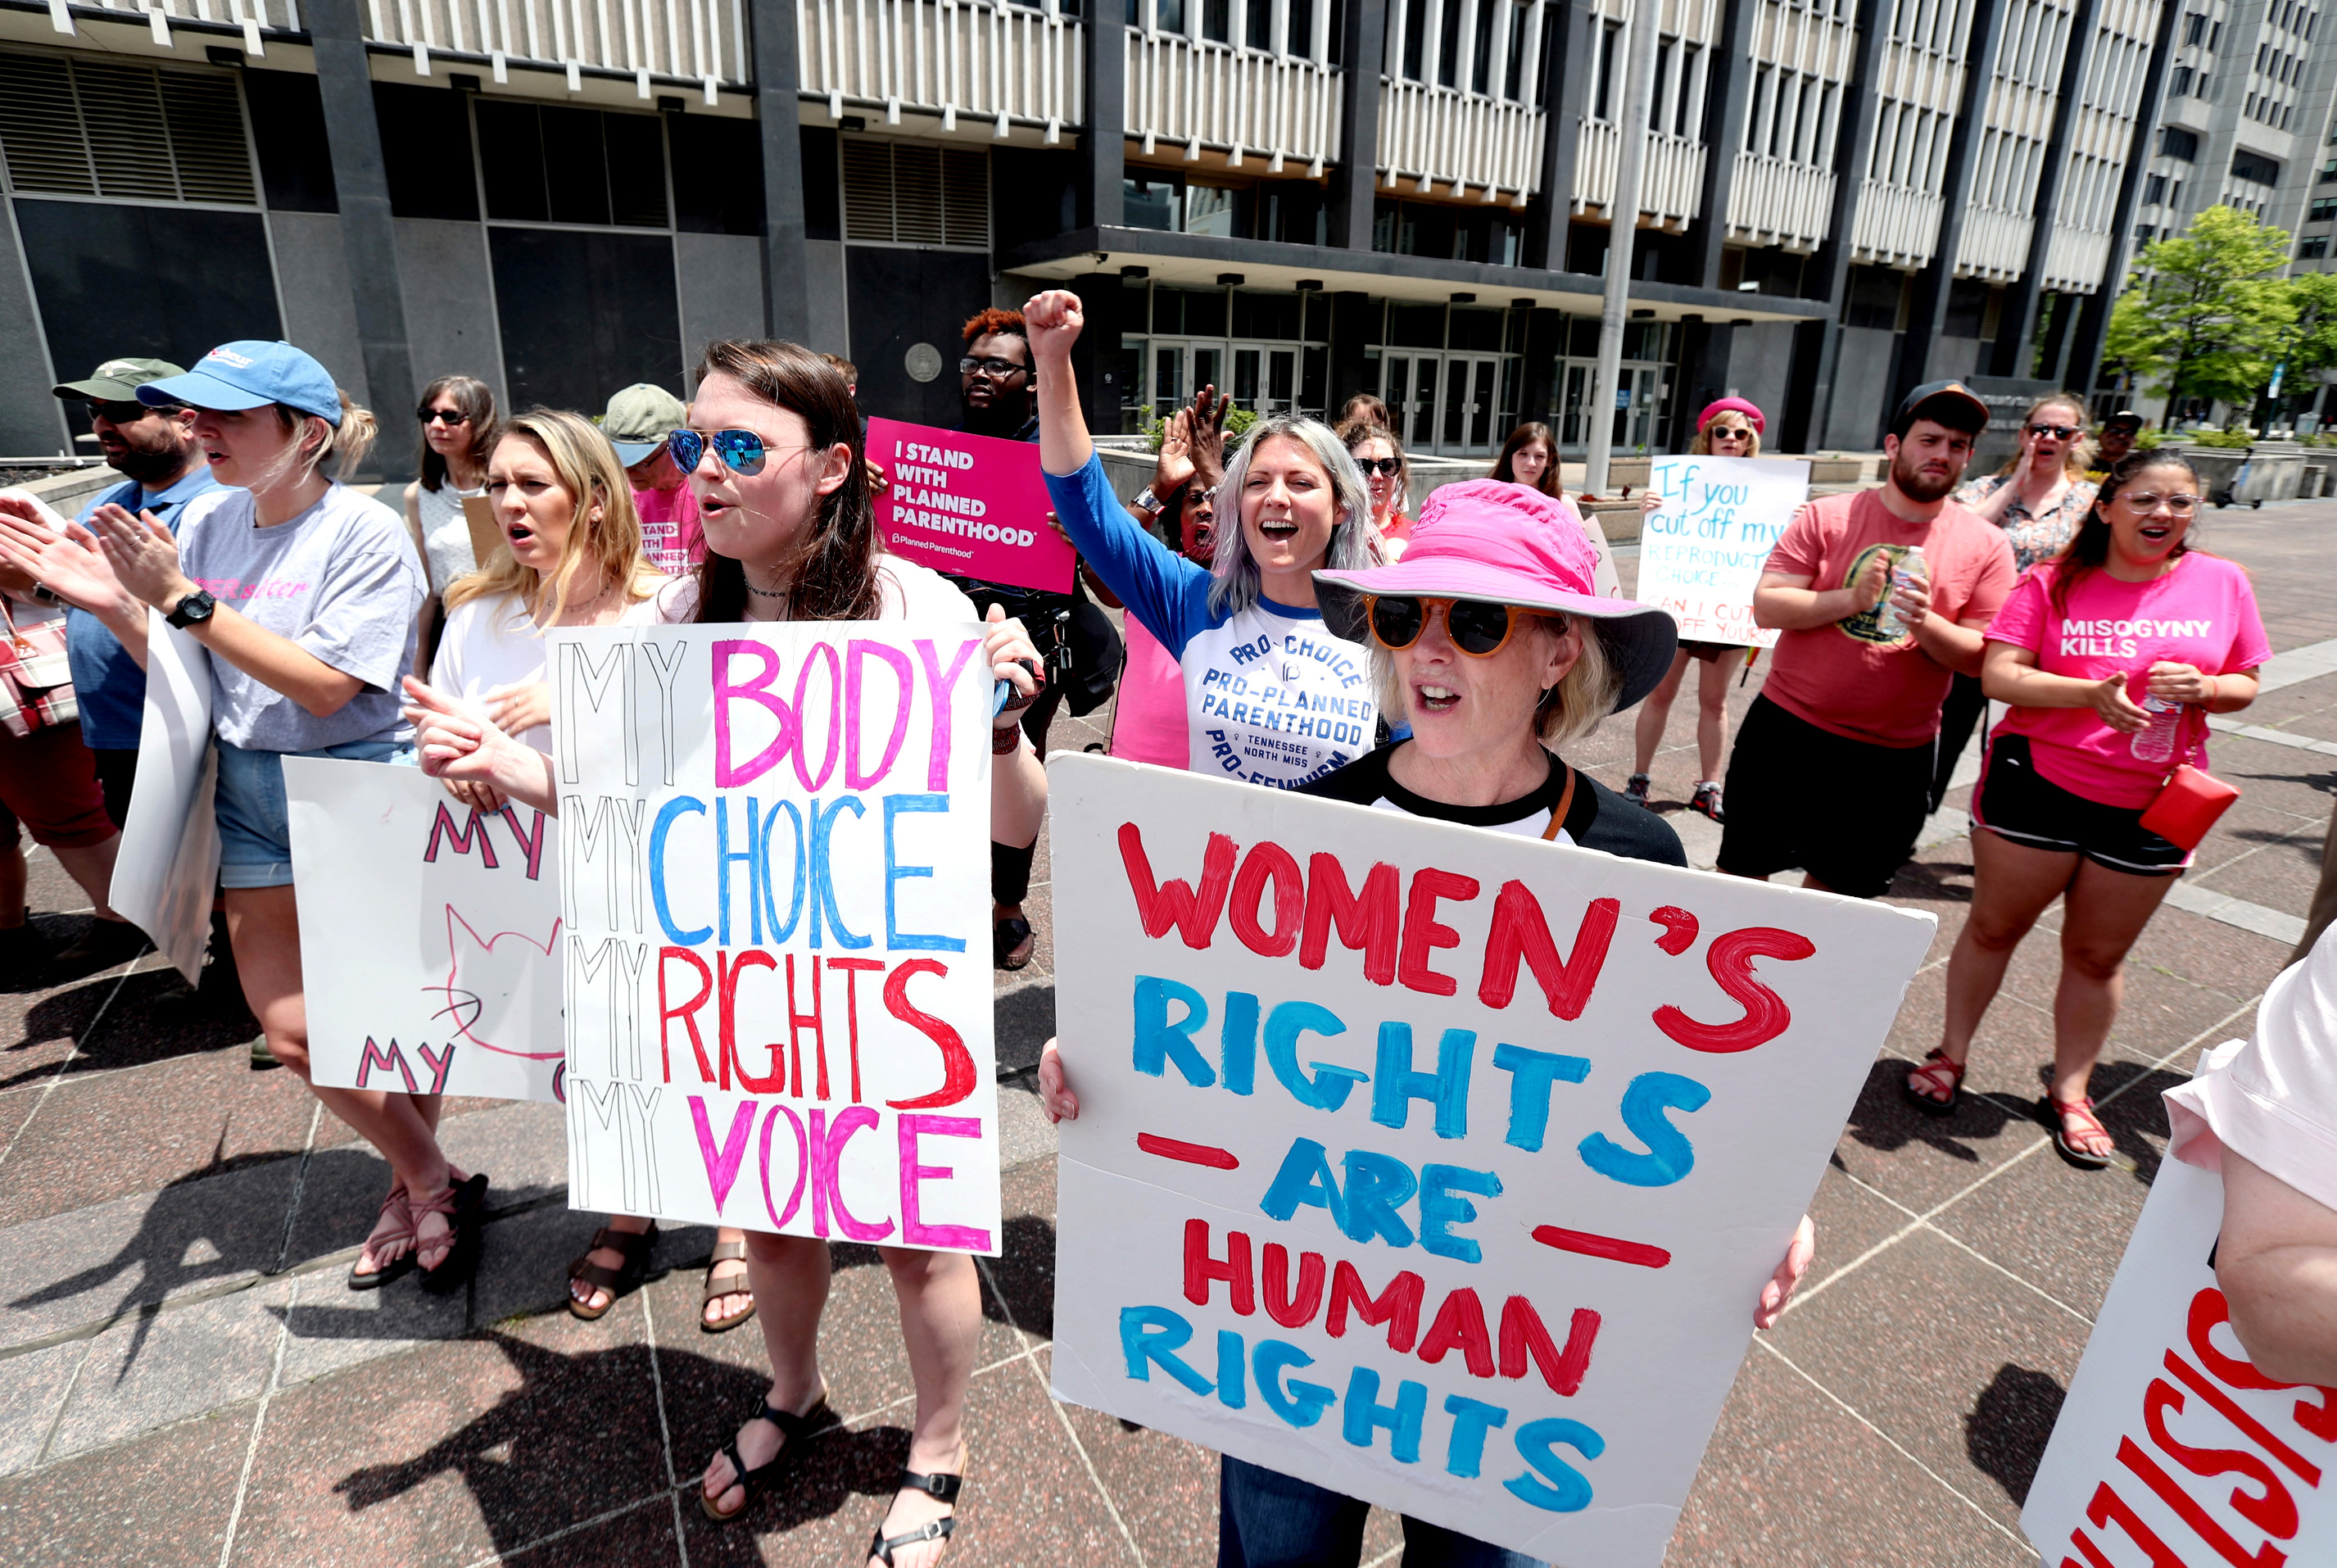 File photo: Pro-choice activists assemble in downtown Memphis during a